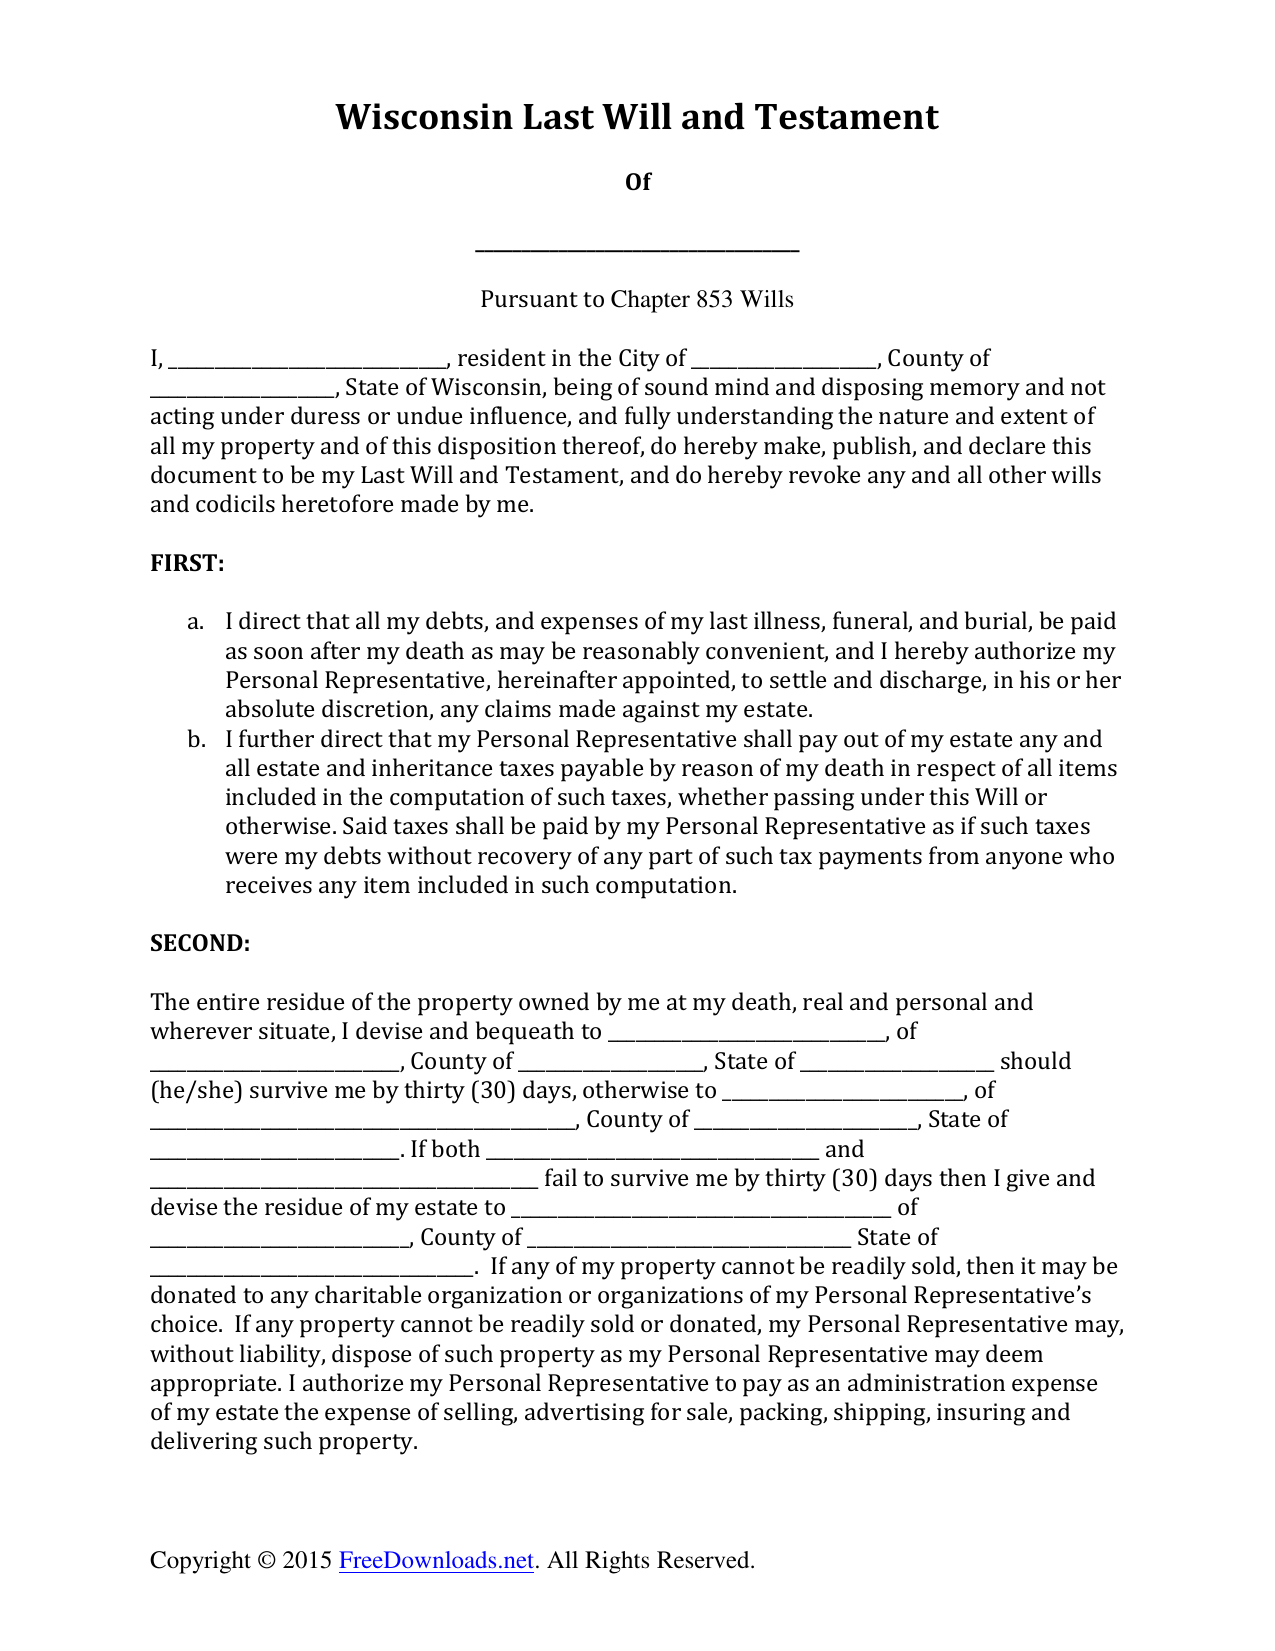 download wisconsin last will and testament form pdf rtf word